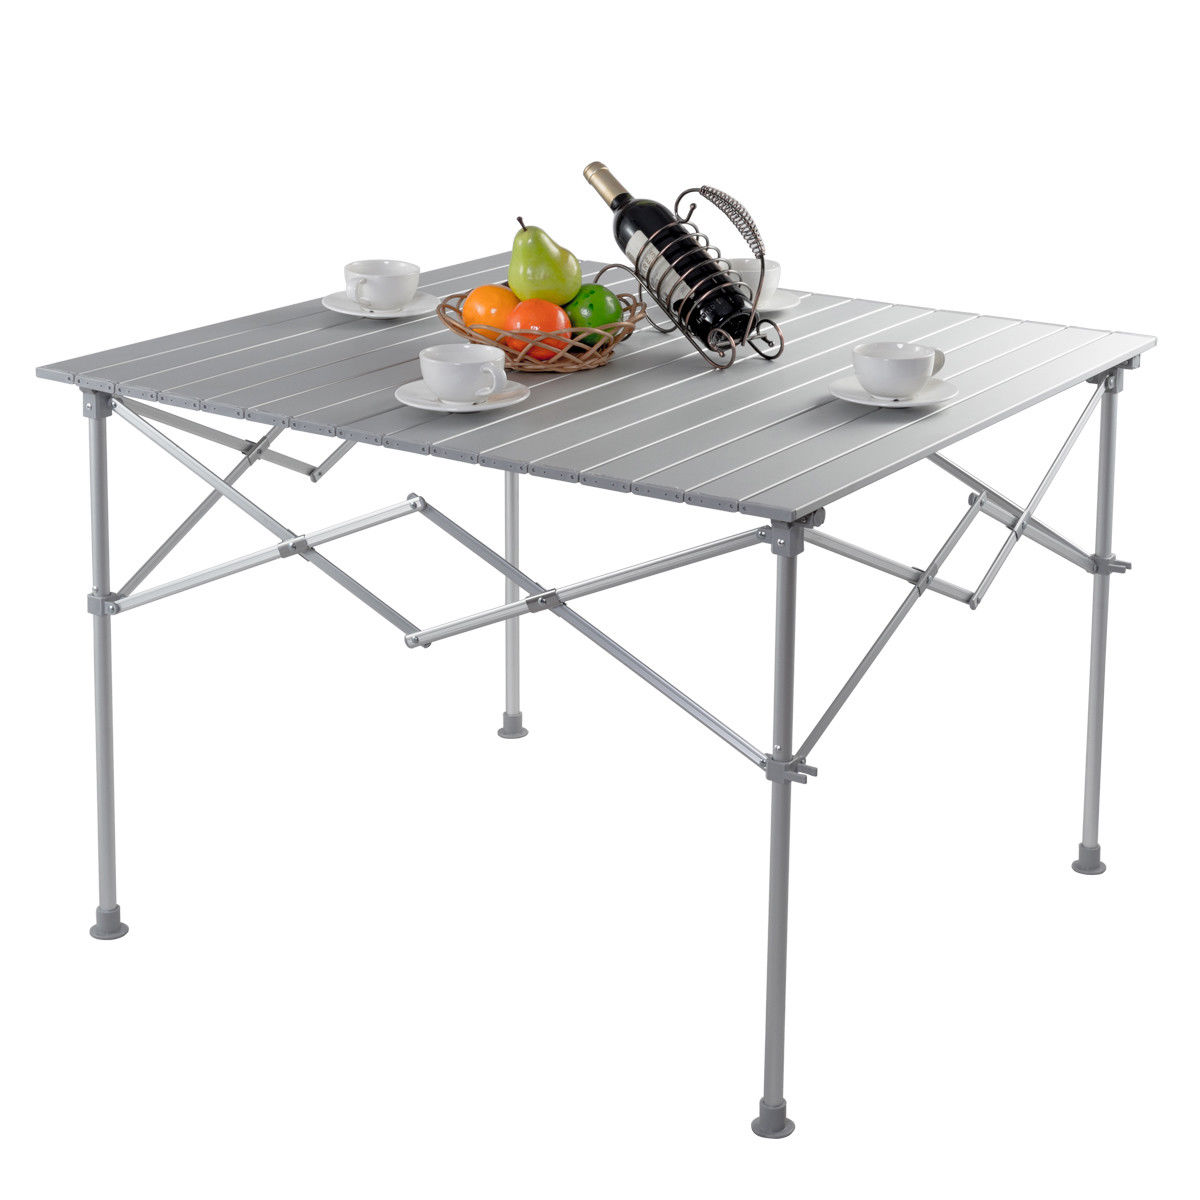 Gymax Aluminum Folding Picnic Camping Table Lightweight Roll-Up In/Outdoor Storage Bag